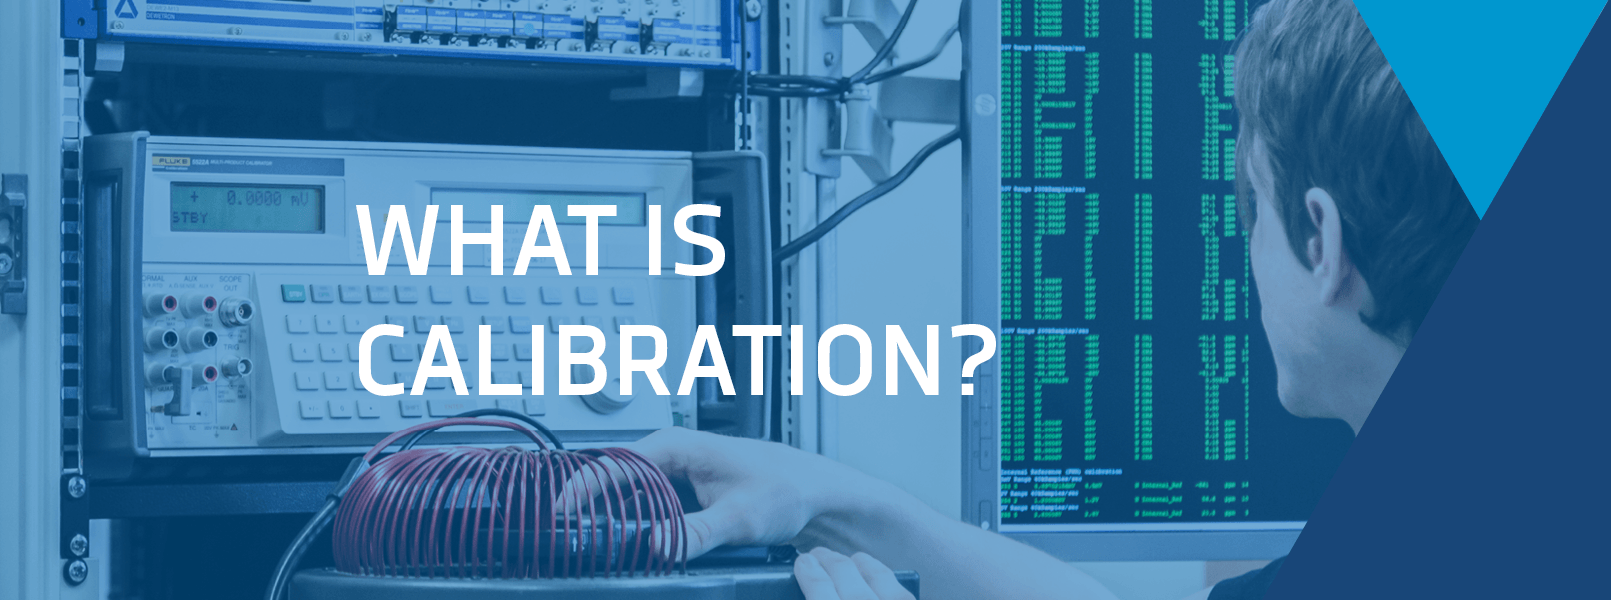 what-is calibration